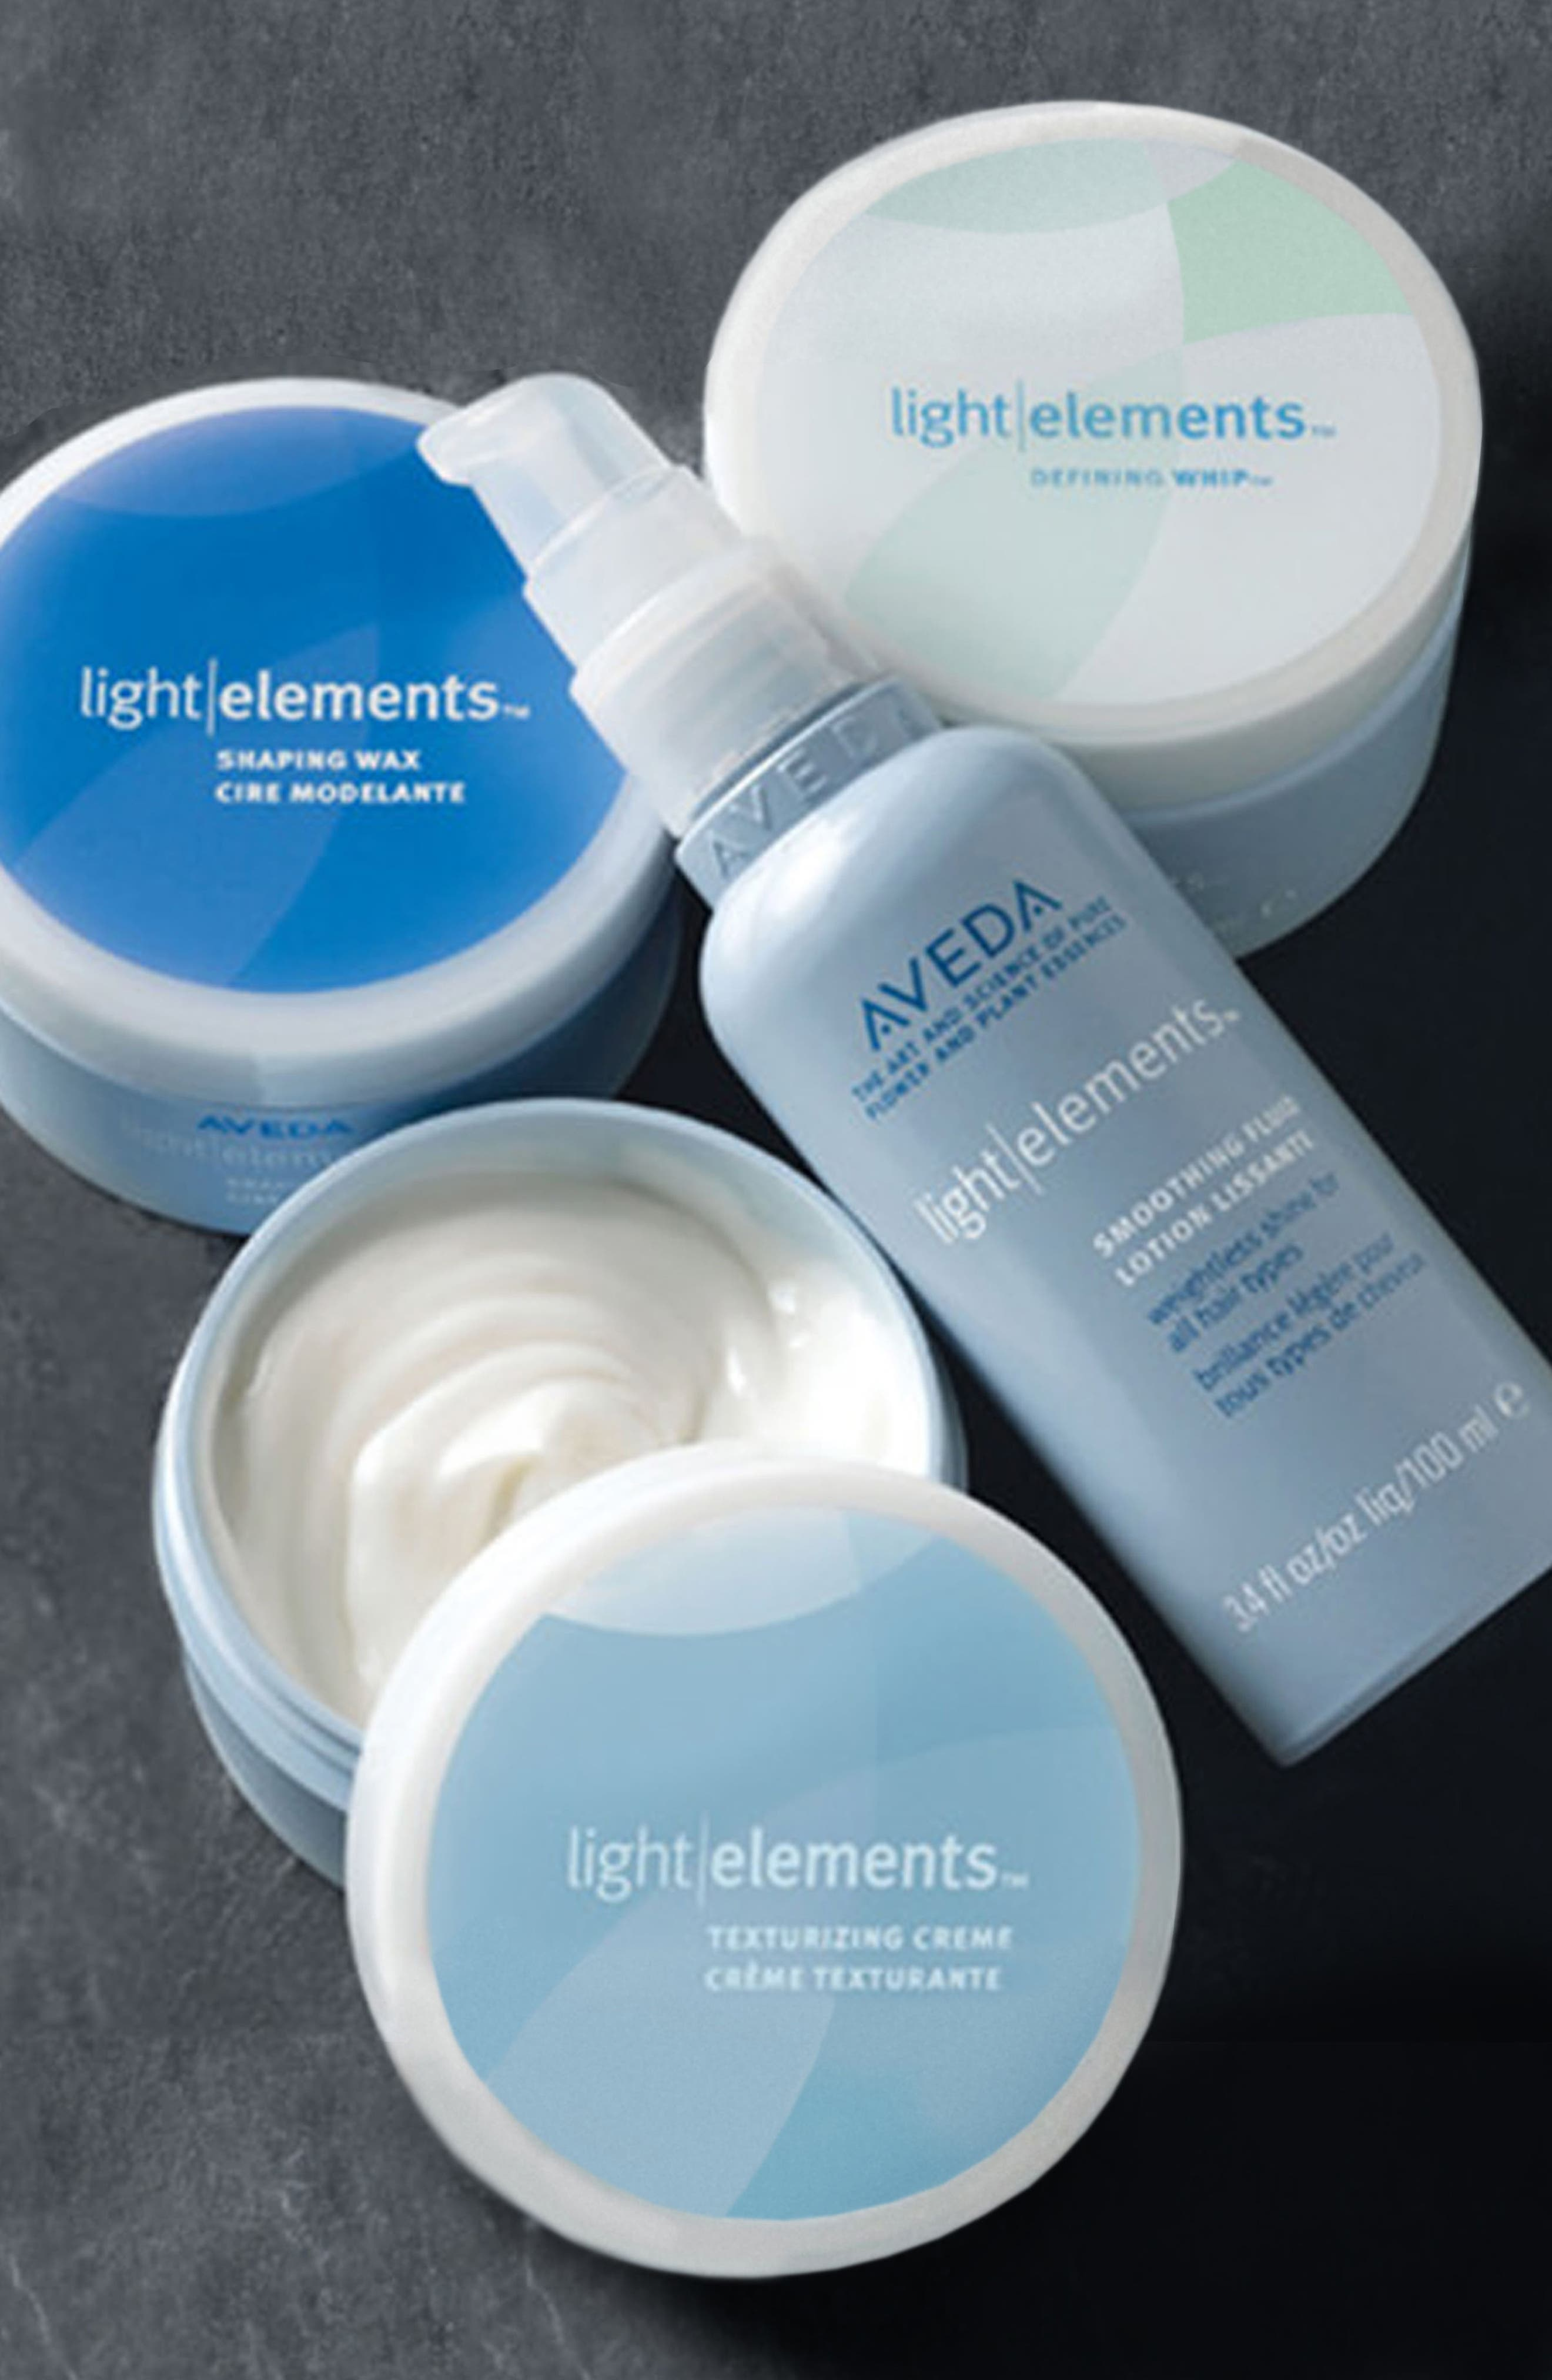 AVEDA, light elements<sup>™</sup> defining whip<sup>™</sup>, Alternate thumbnail 2, color, NO COLOR